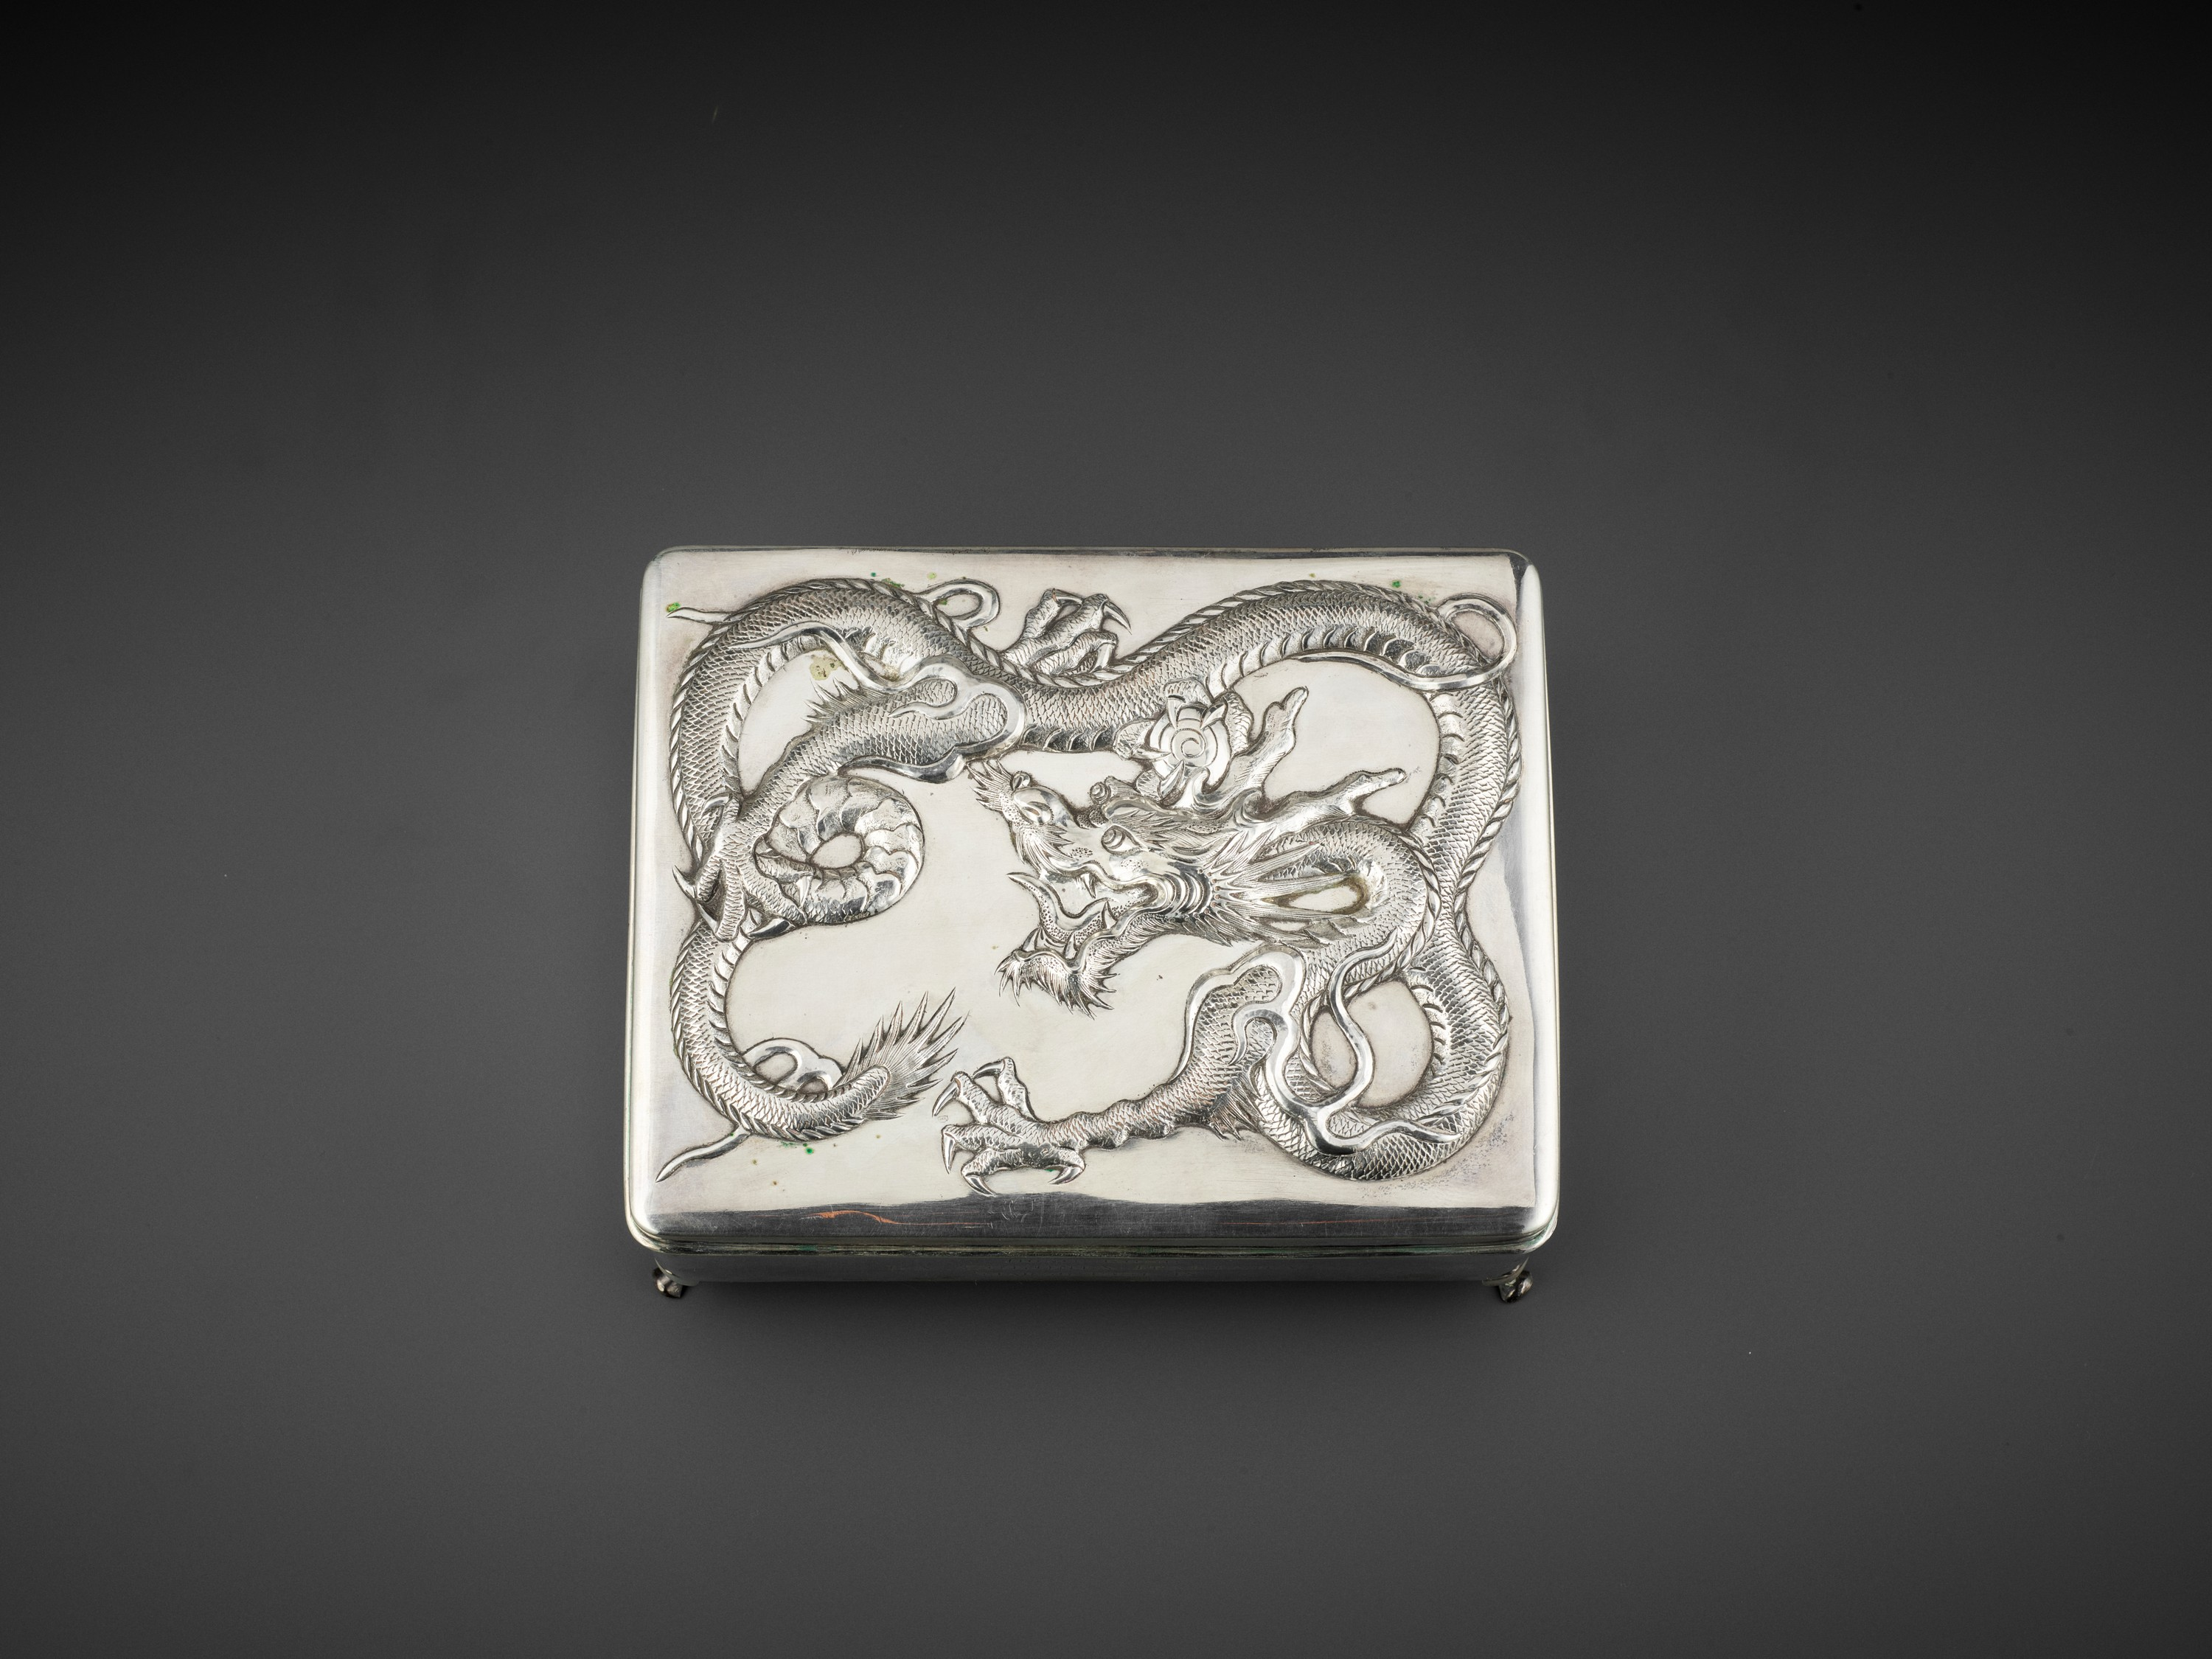 A SILVER REPOUSSE 'DRAGON' BOX AND COVER, WANG HING, LATE QING TO REPUBLIC - Image 3 of 10